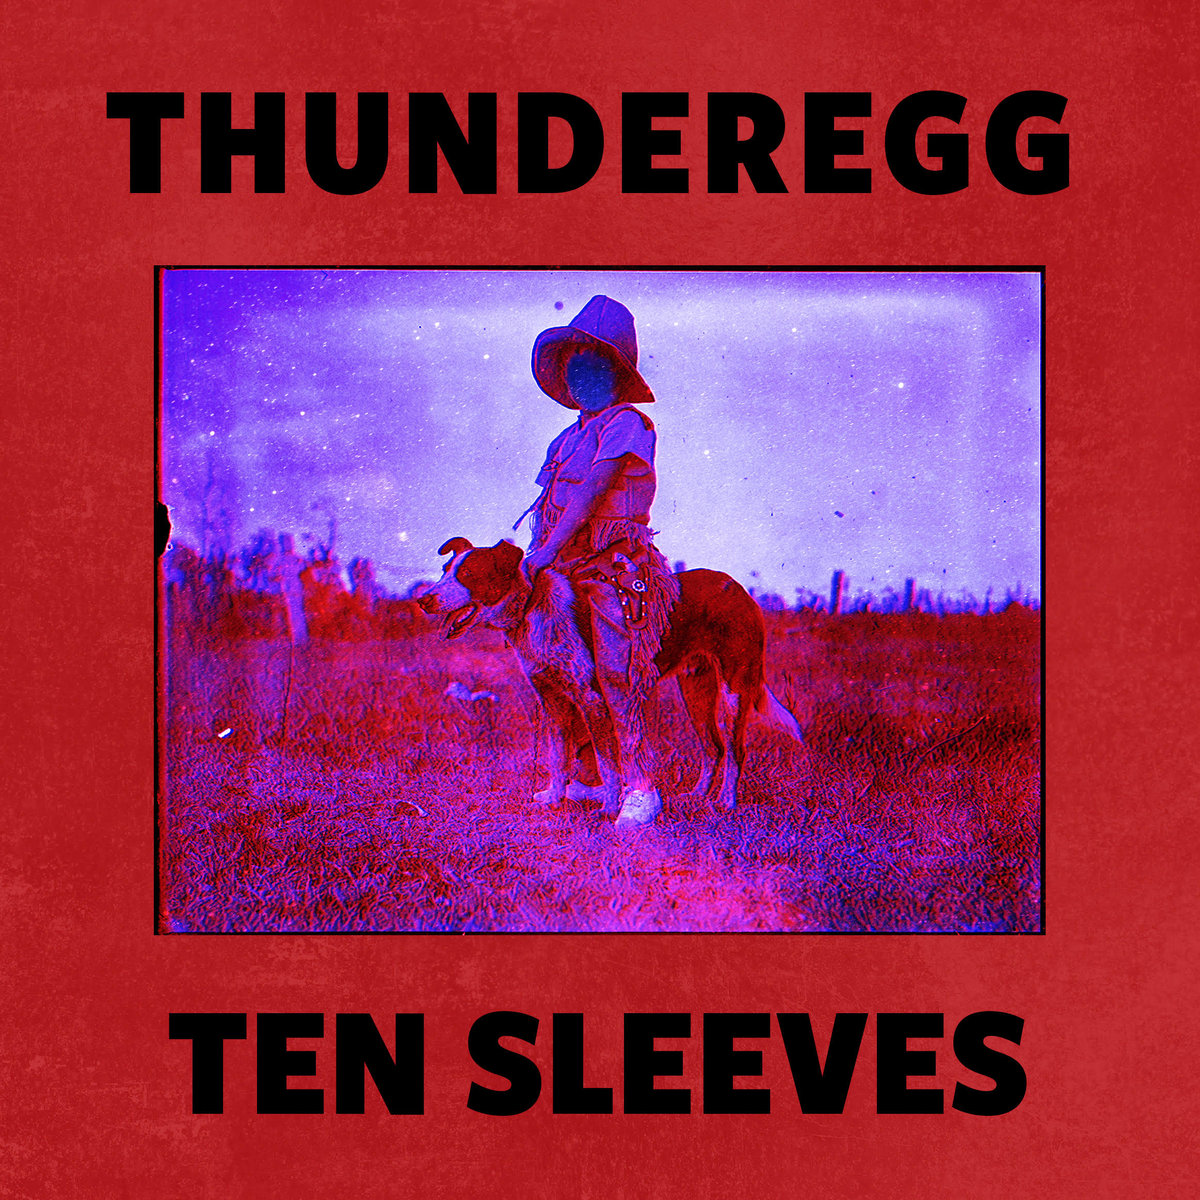 thunderegg-ten sleeves.jpg